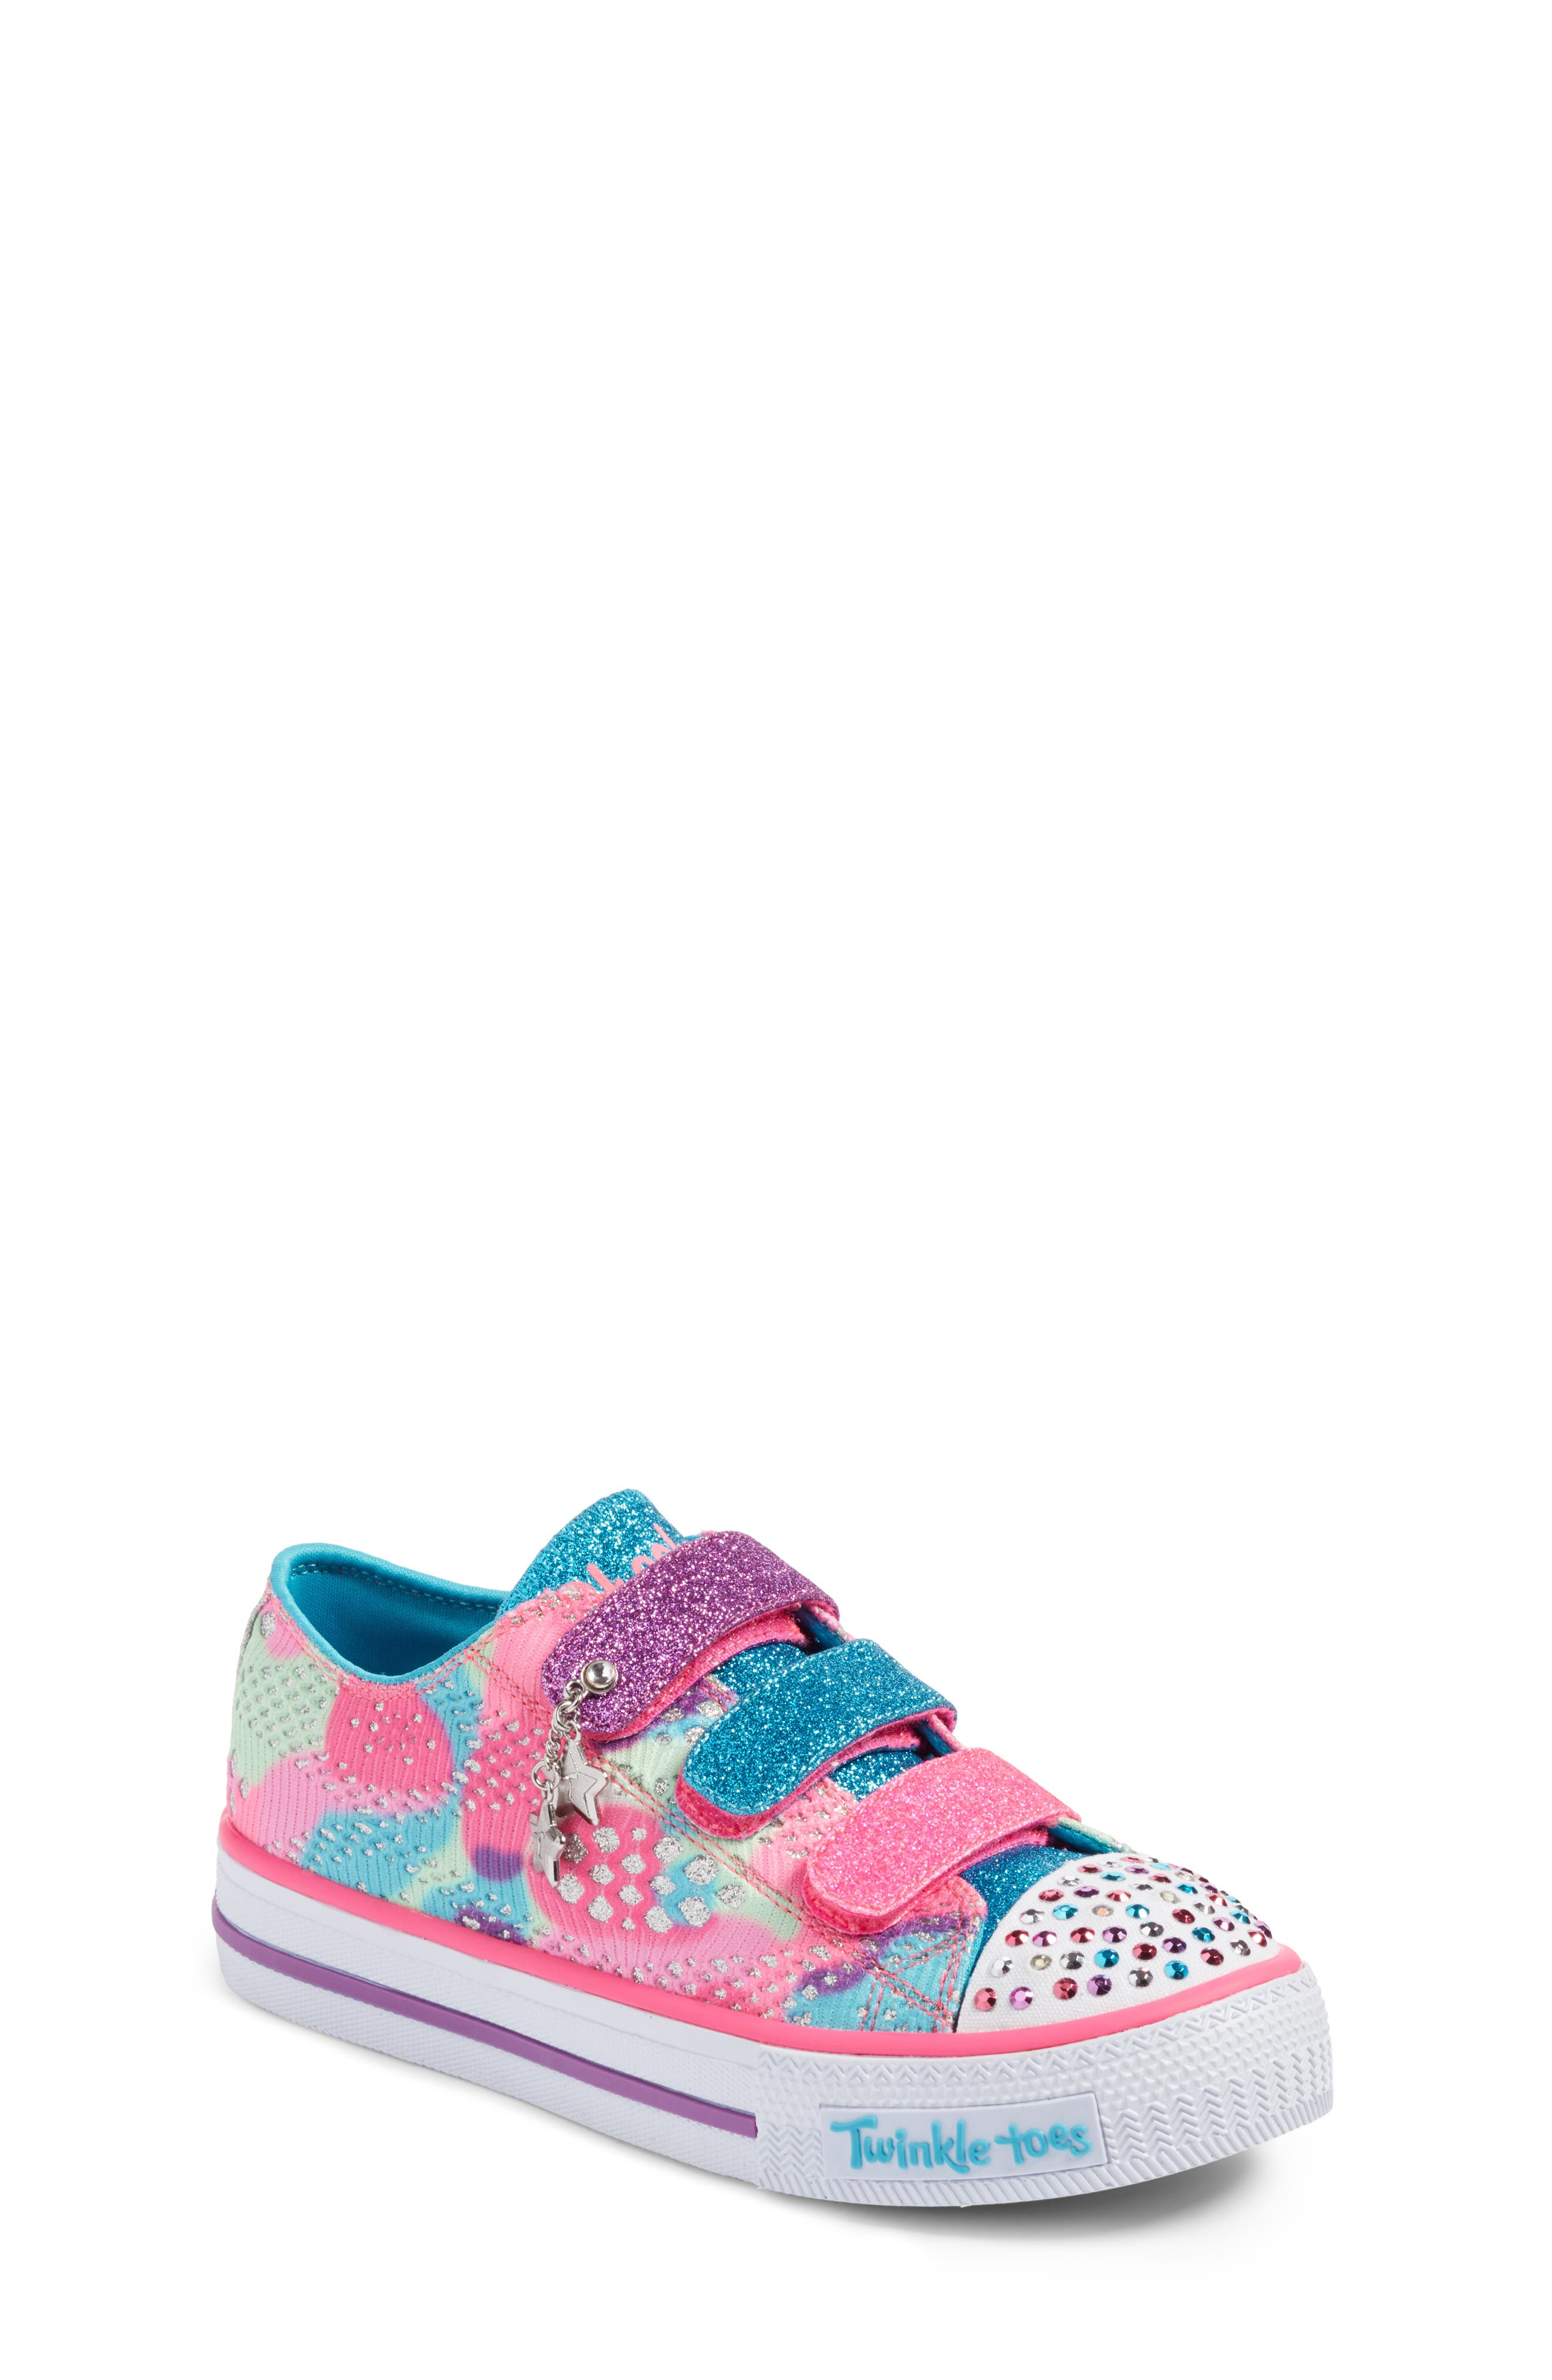 SKECHERS Twinkle Toes Shuffles Light-Up Sneaker (Toddler & Little Kid)